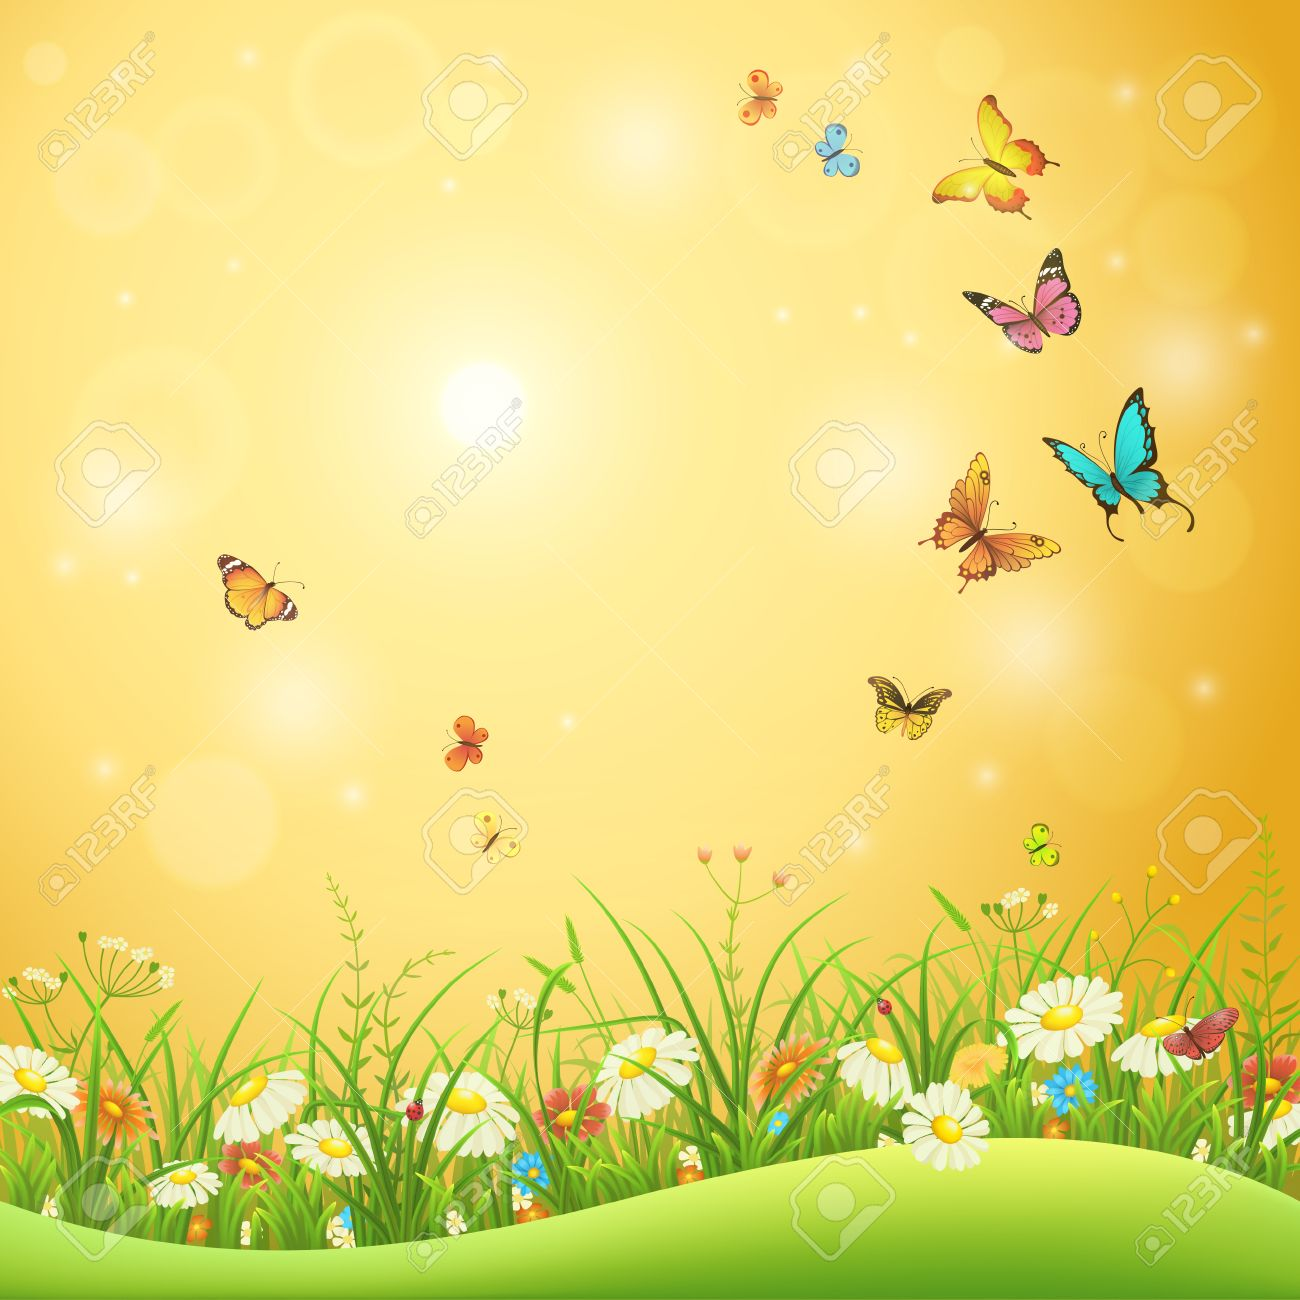 Spring or summer flowers, green grass and butterflies, nature background - 53040412